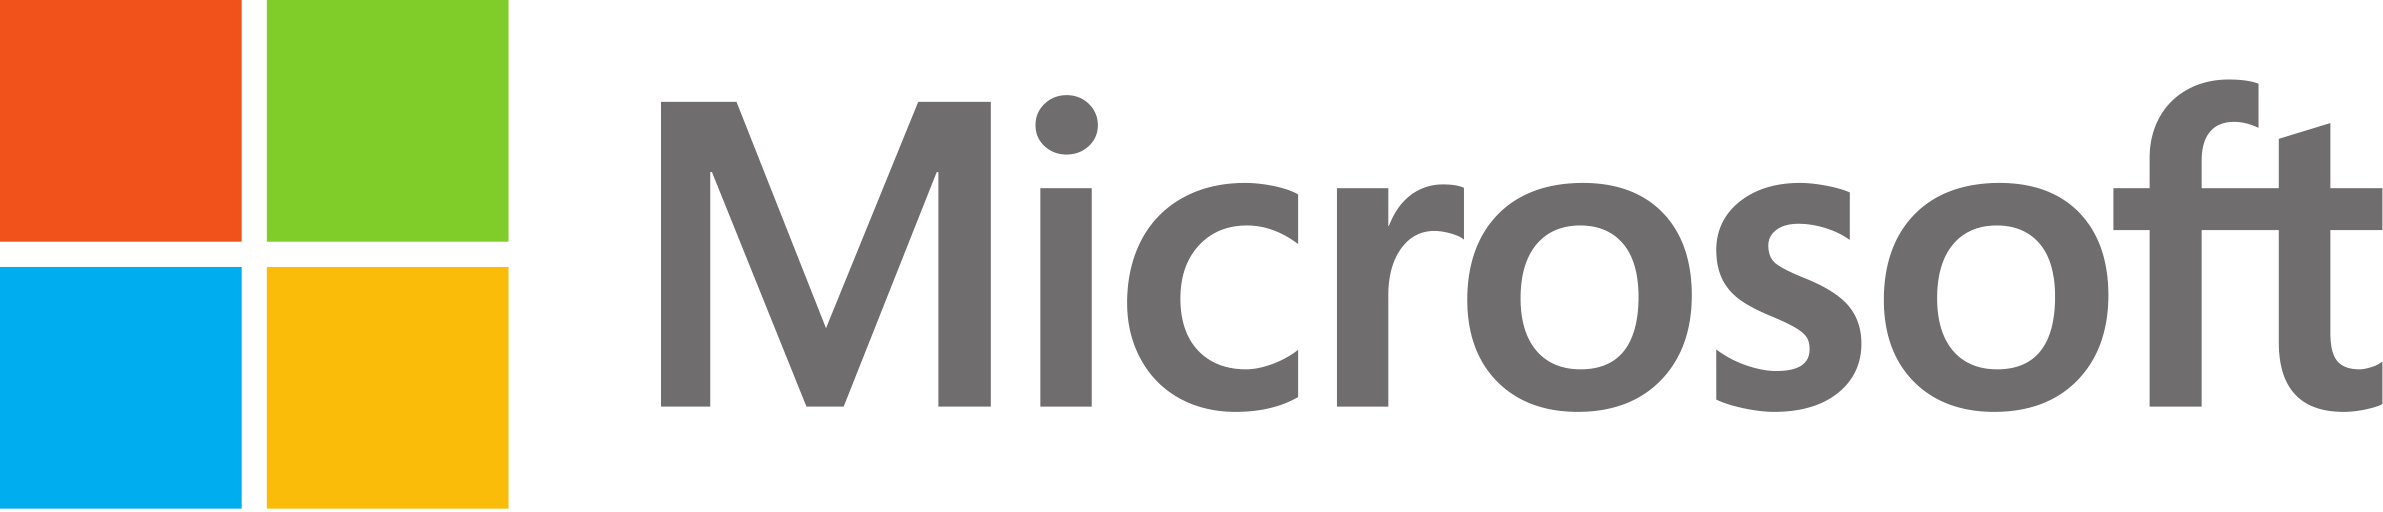 Image of microsoft logo brand for rentals